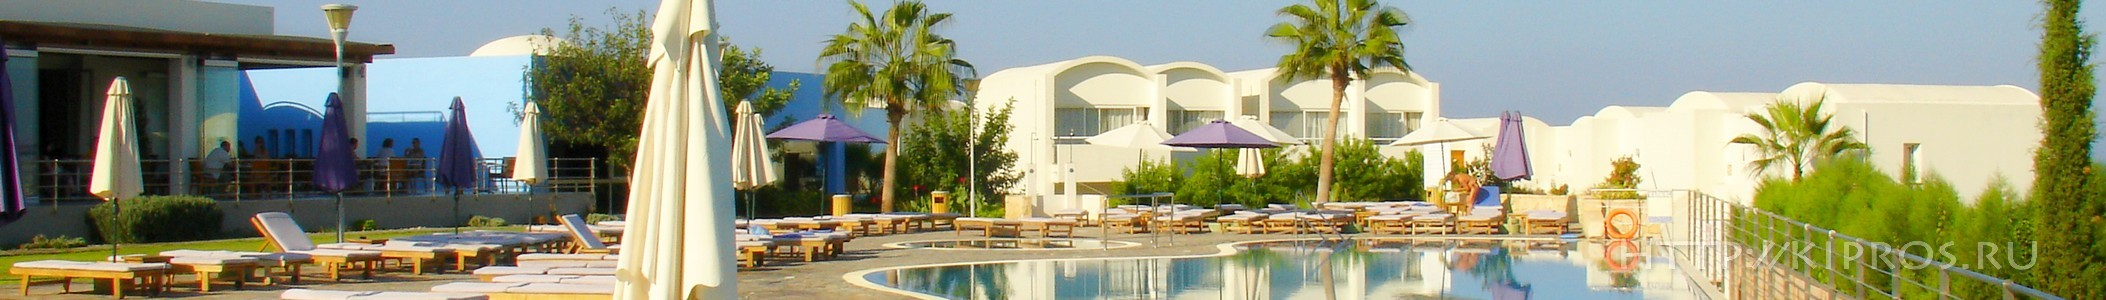 Отель Theo Sunset Bay Holiday Village 4*